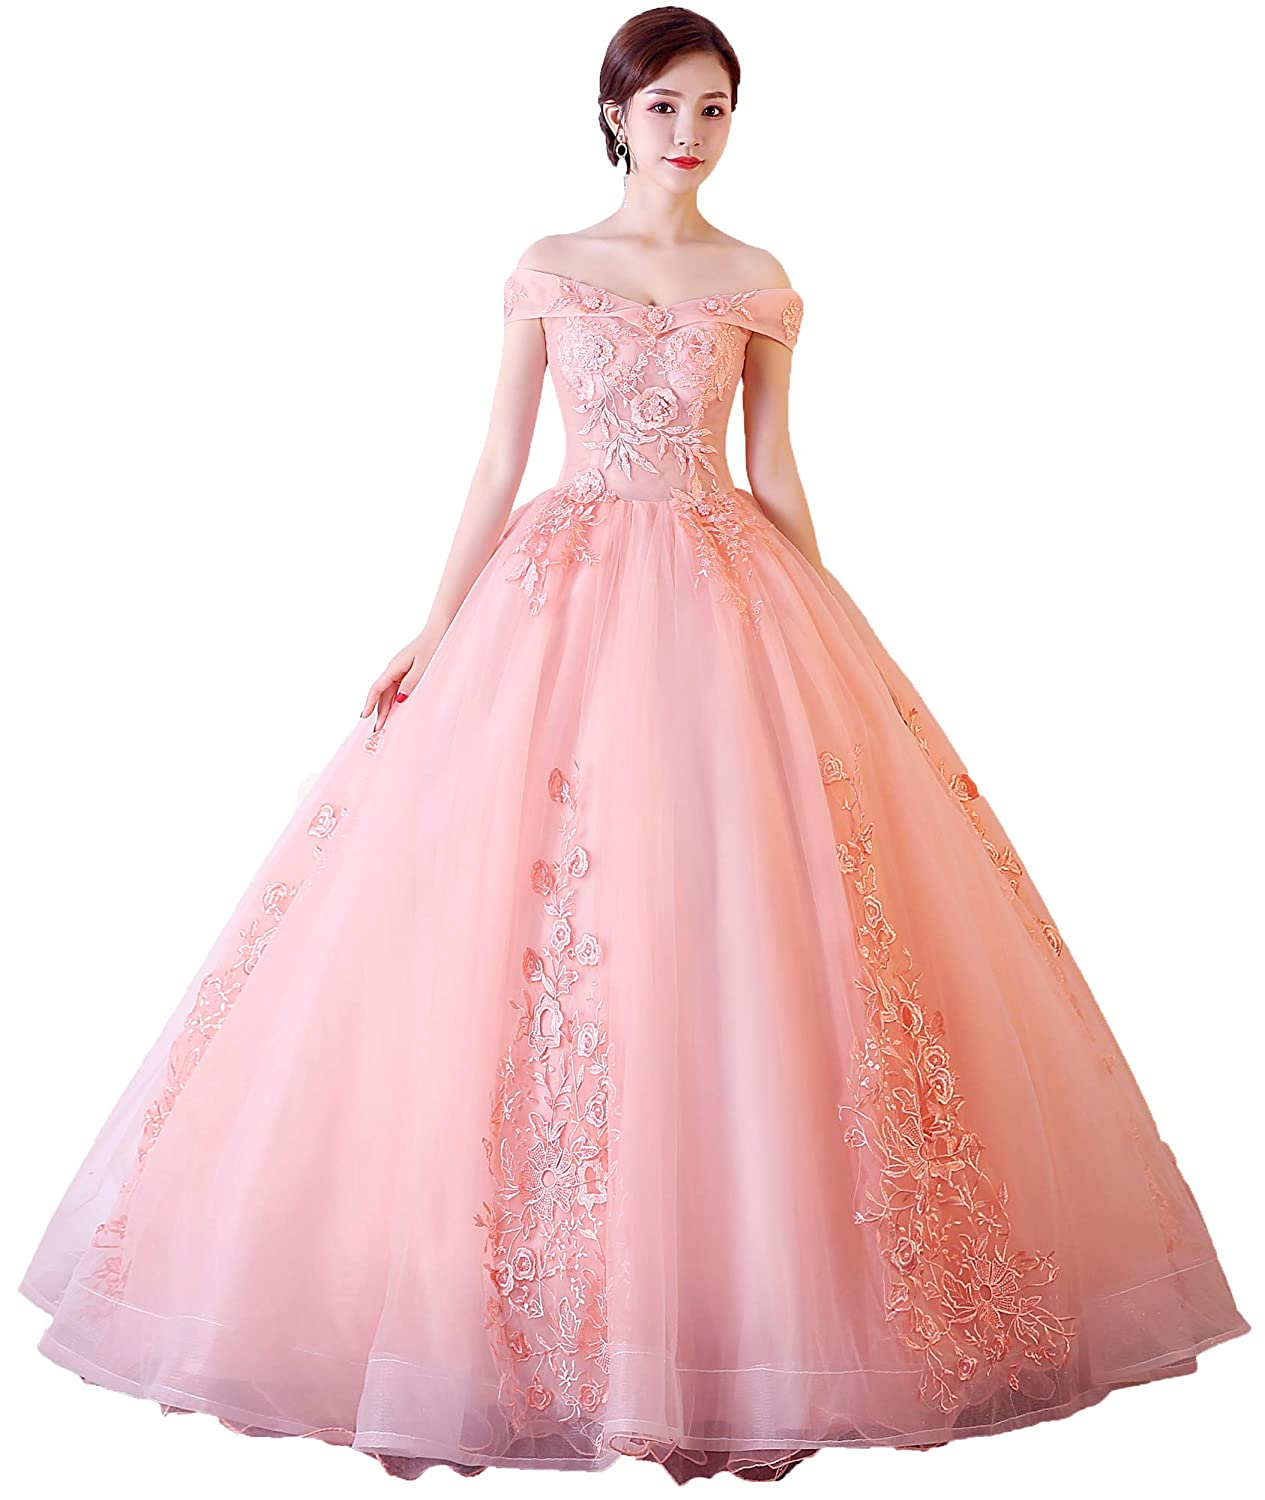 Peach Okaybrial Women's Sweet 16 Quinceanera Dresses bluesh Pink Off Shoulder Lace Long Prom Ball Gowns Plus Size